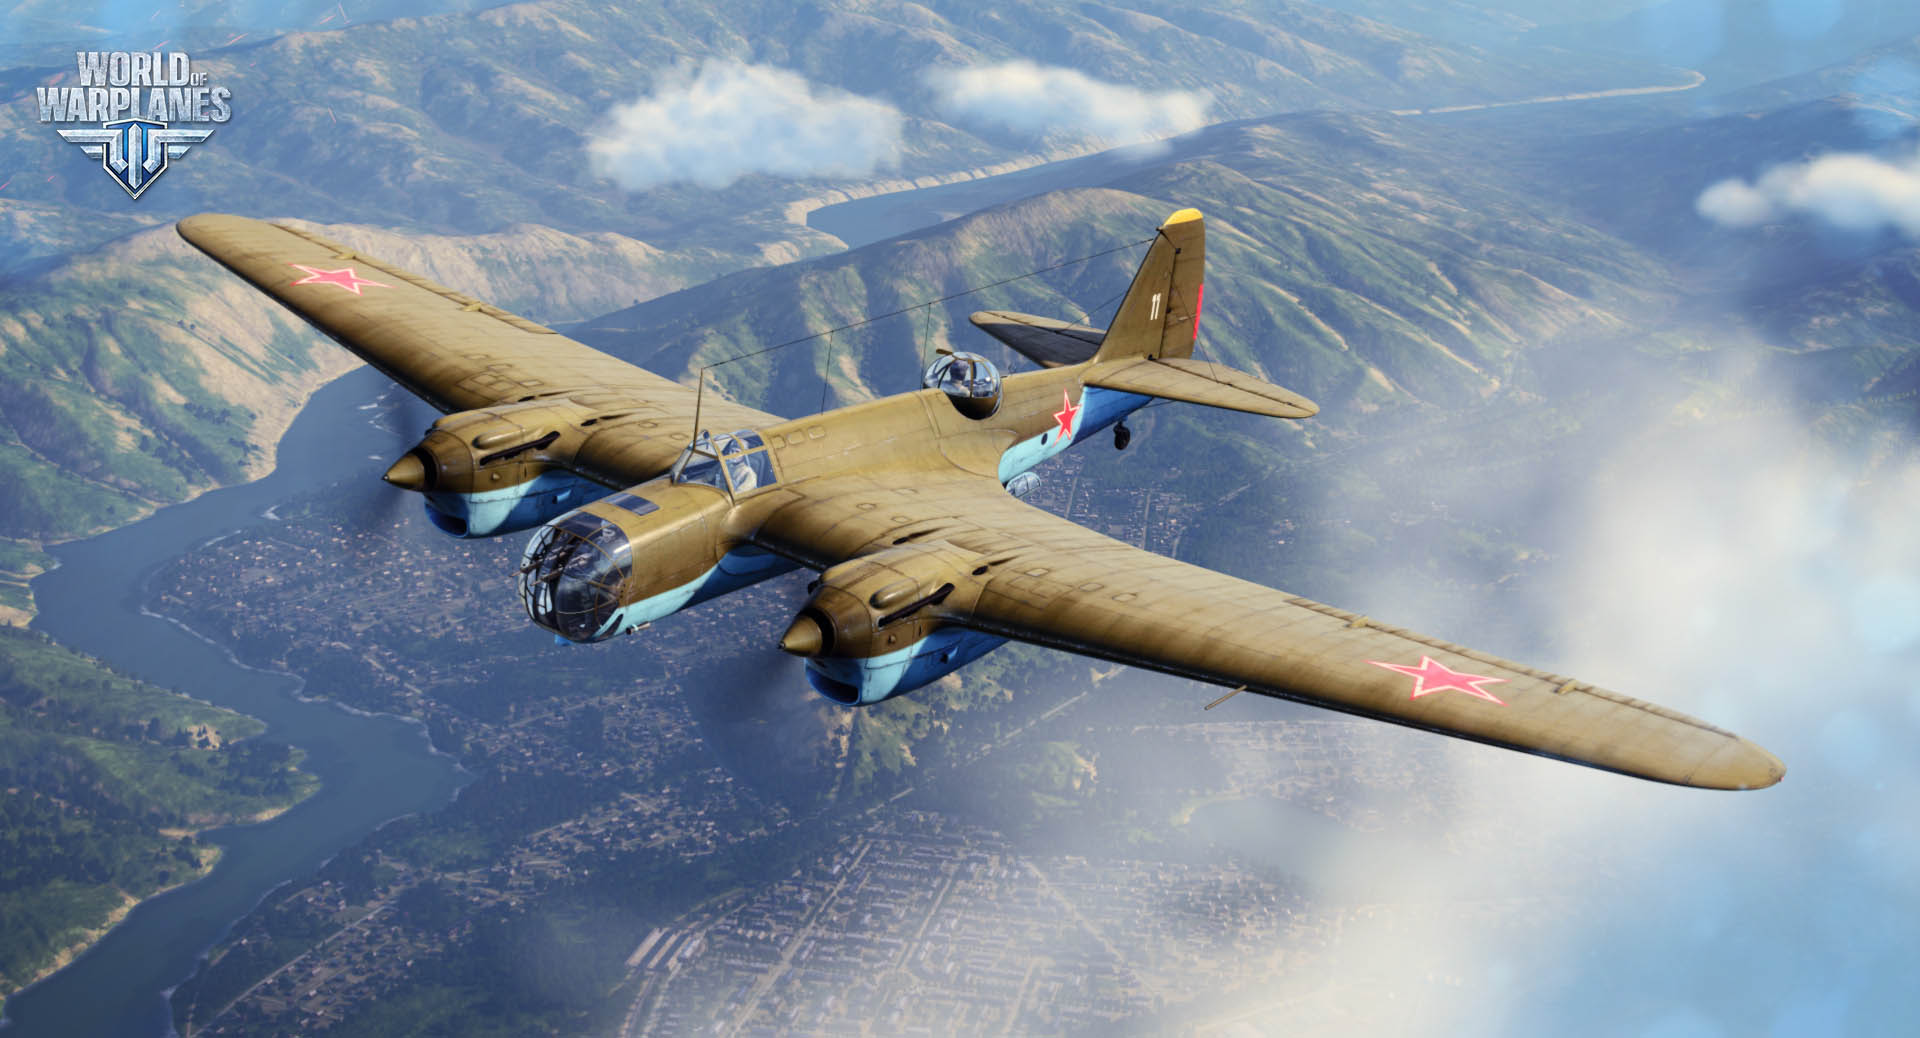 World of Warplanes - USSR BOMBER II